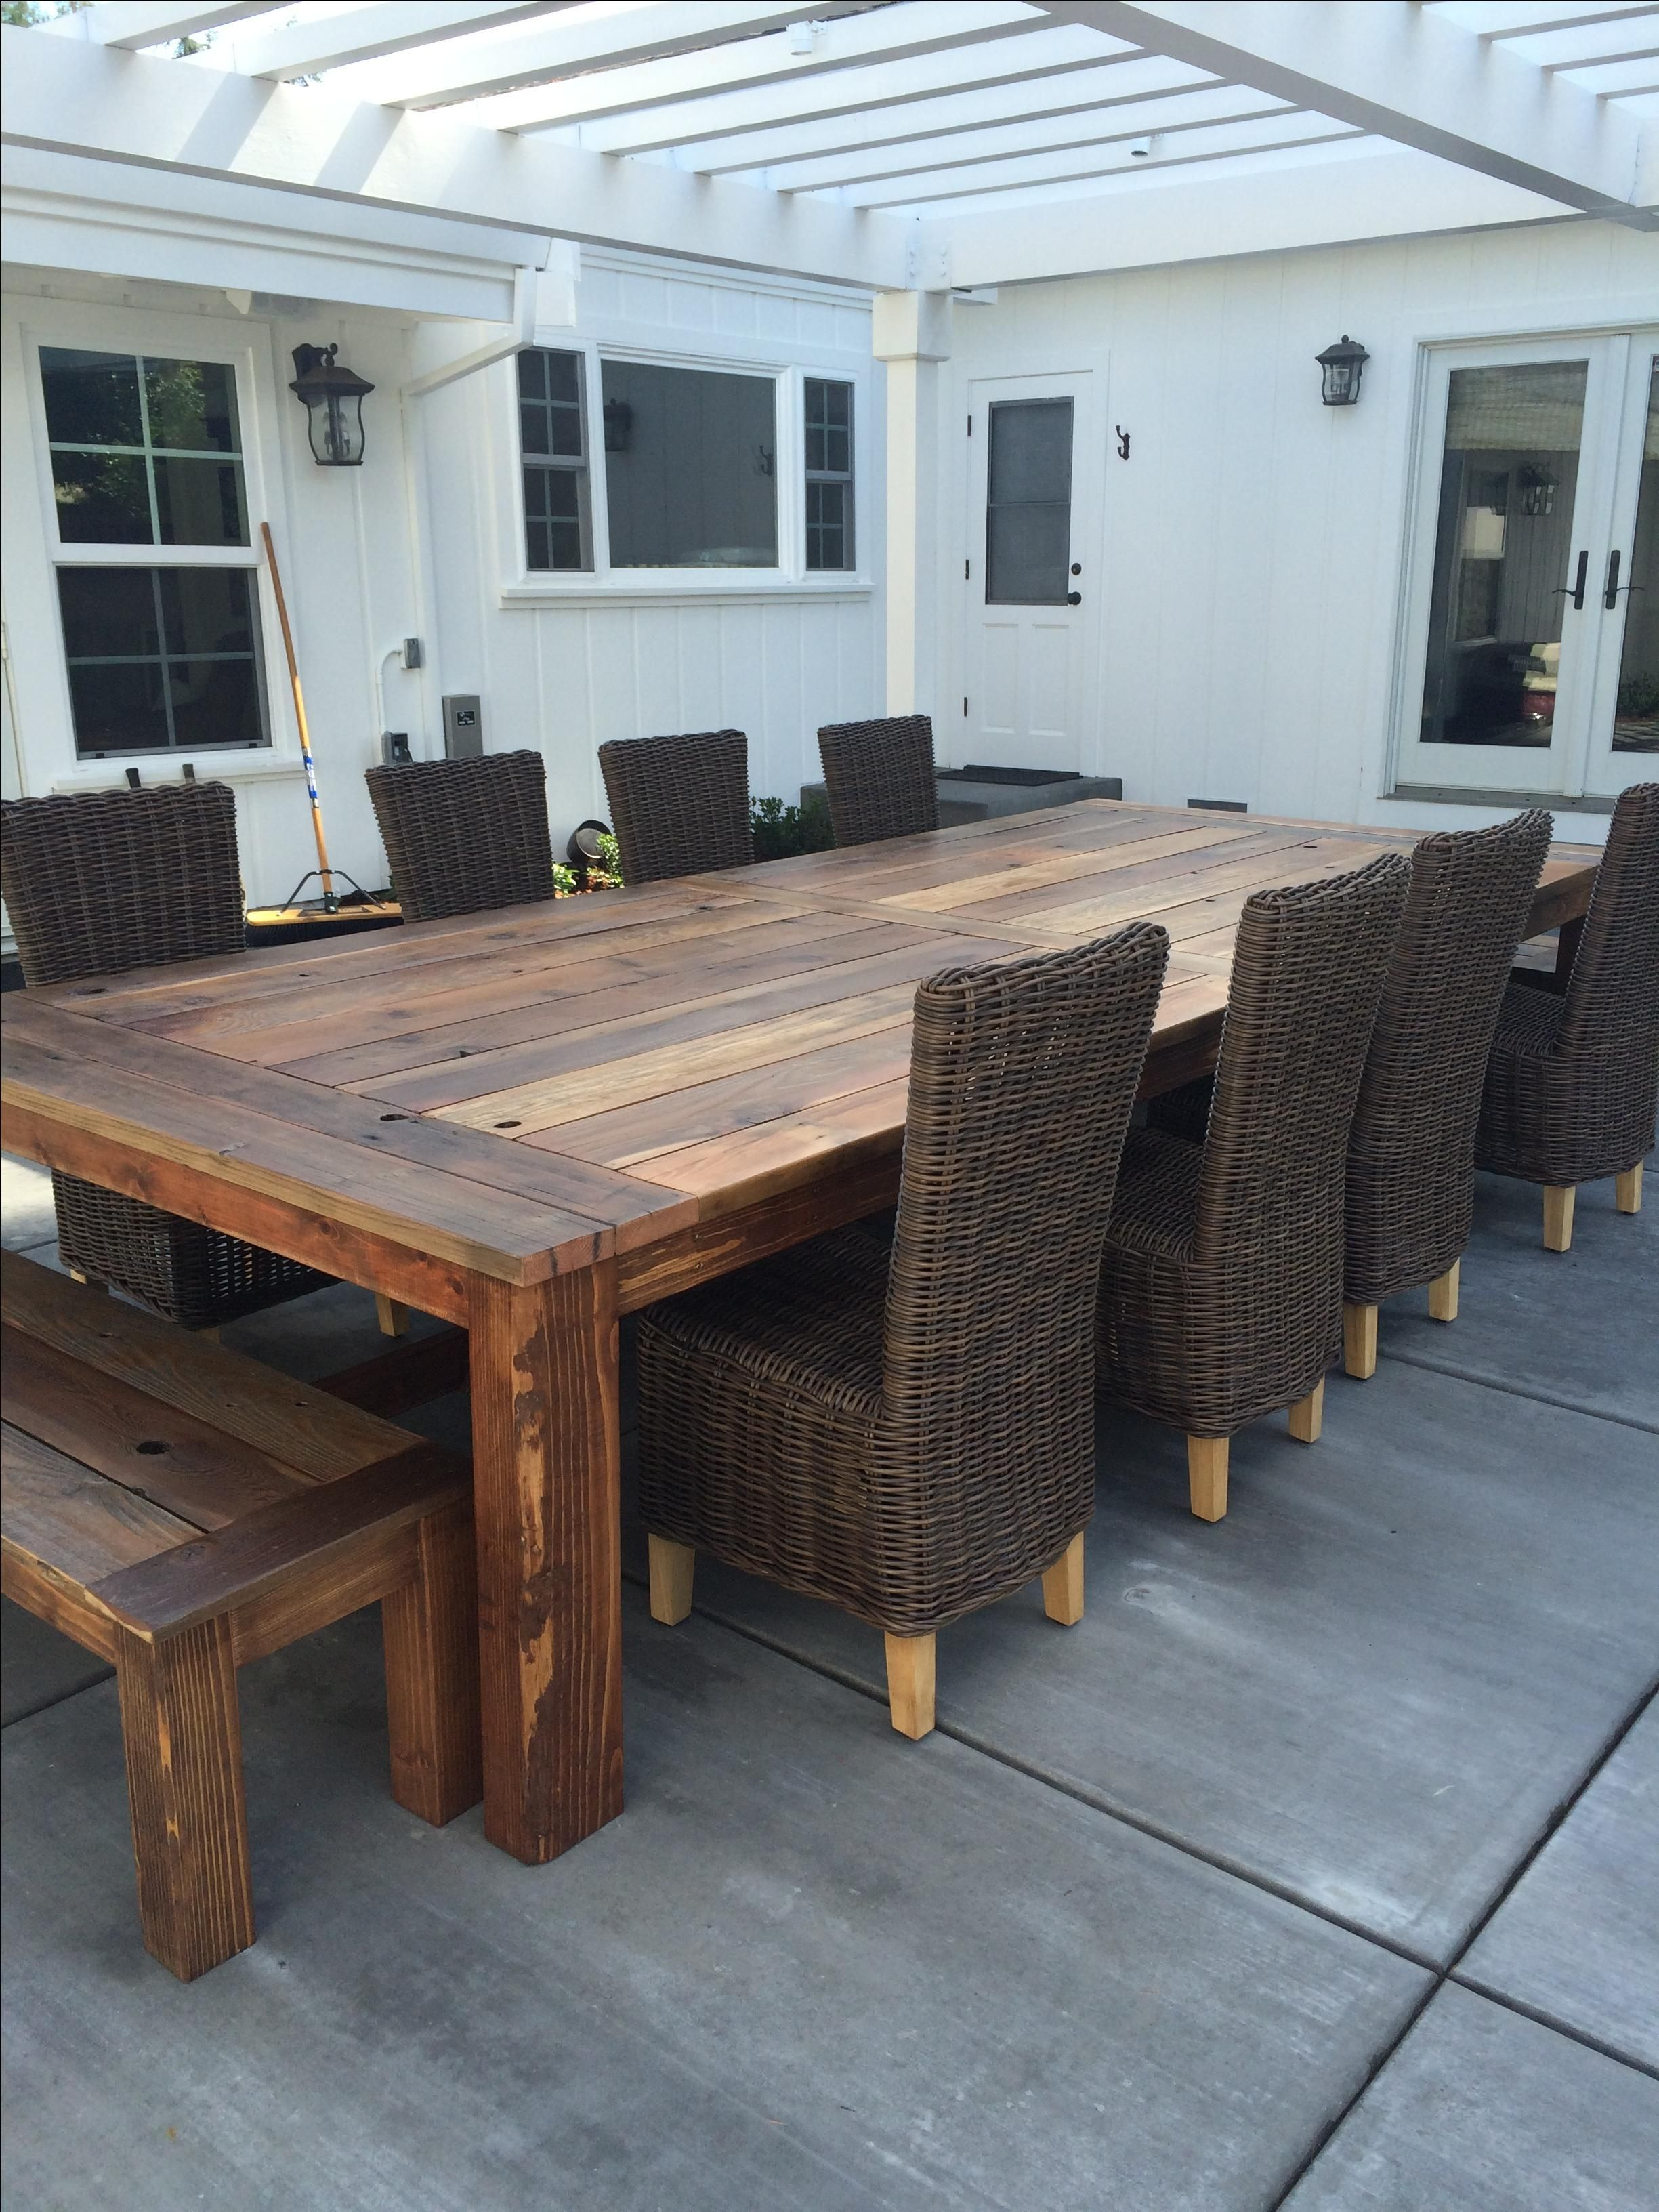 Custom Outdoor Furniture CustomMadecom - Salvaged wood farmhouse table